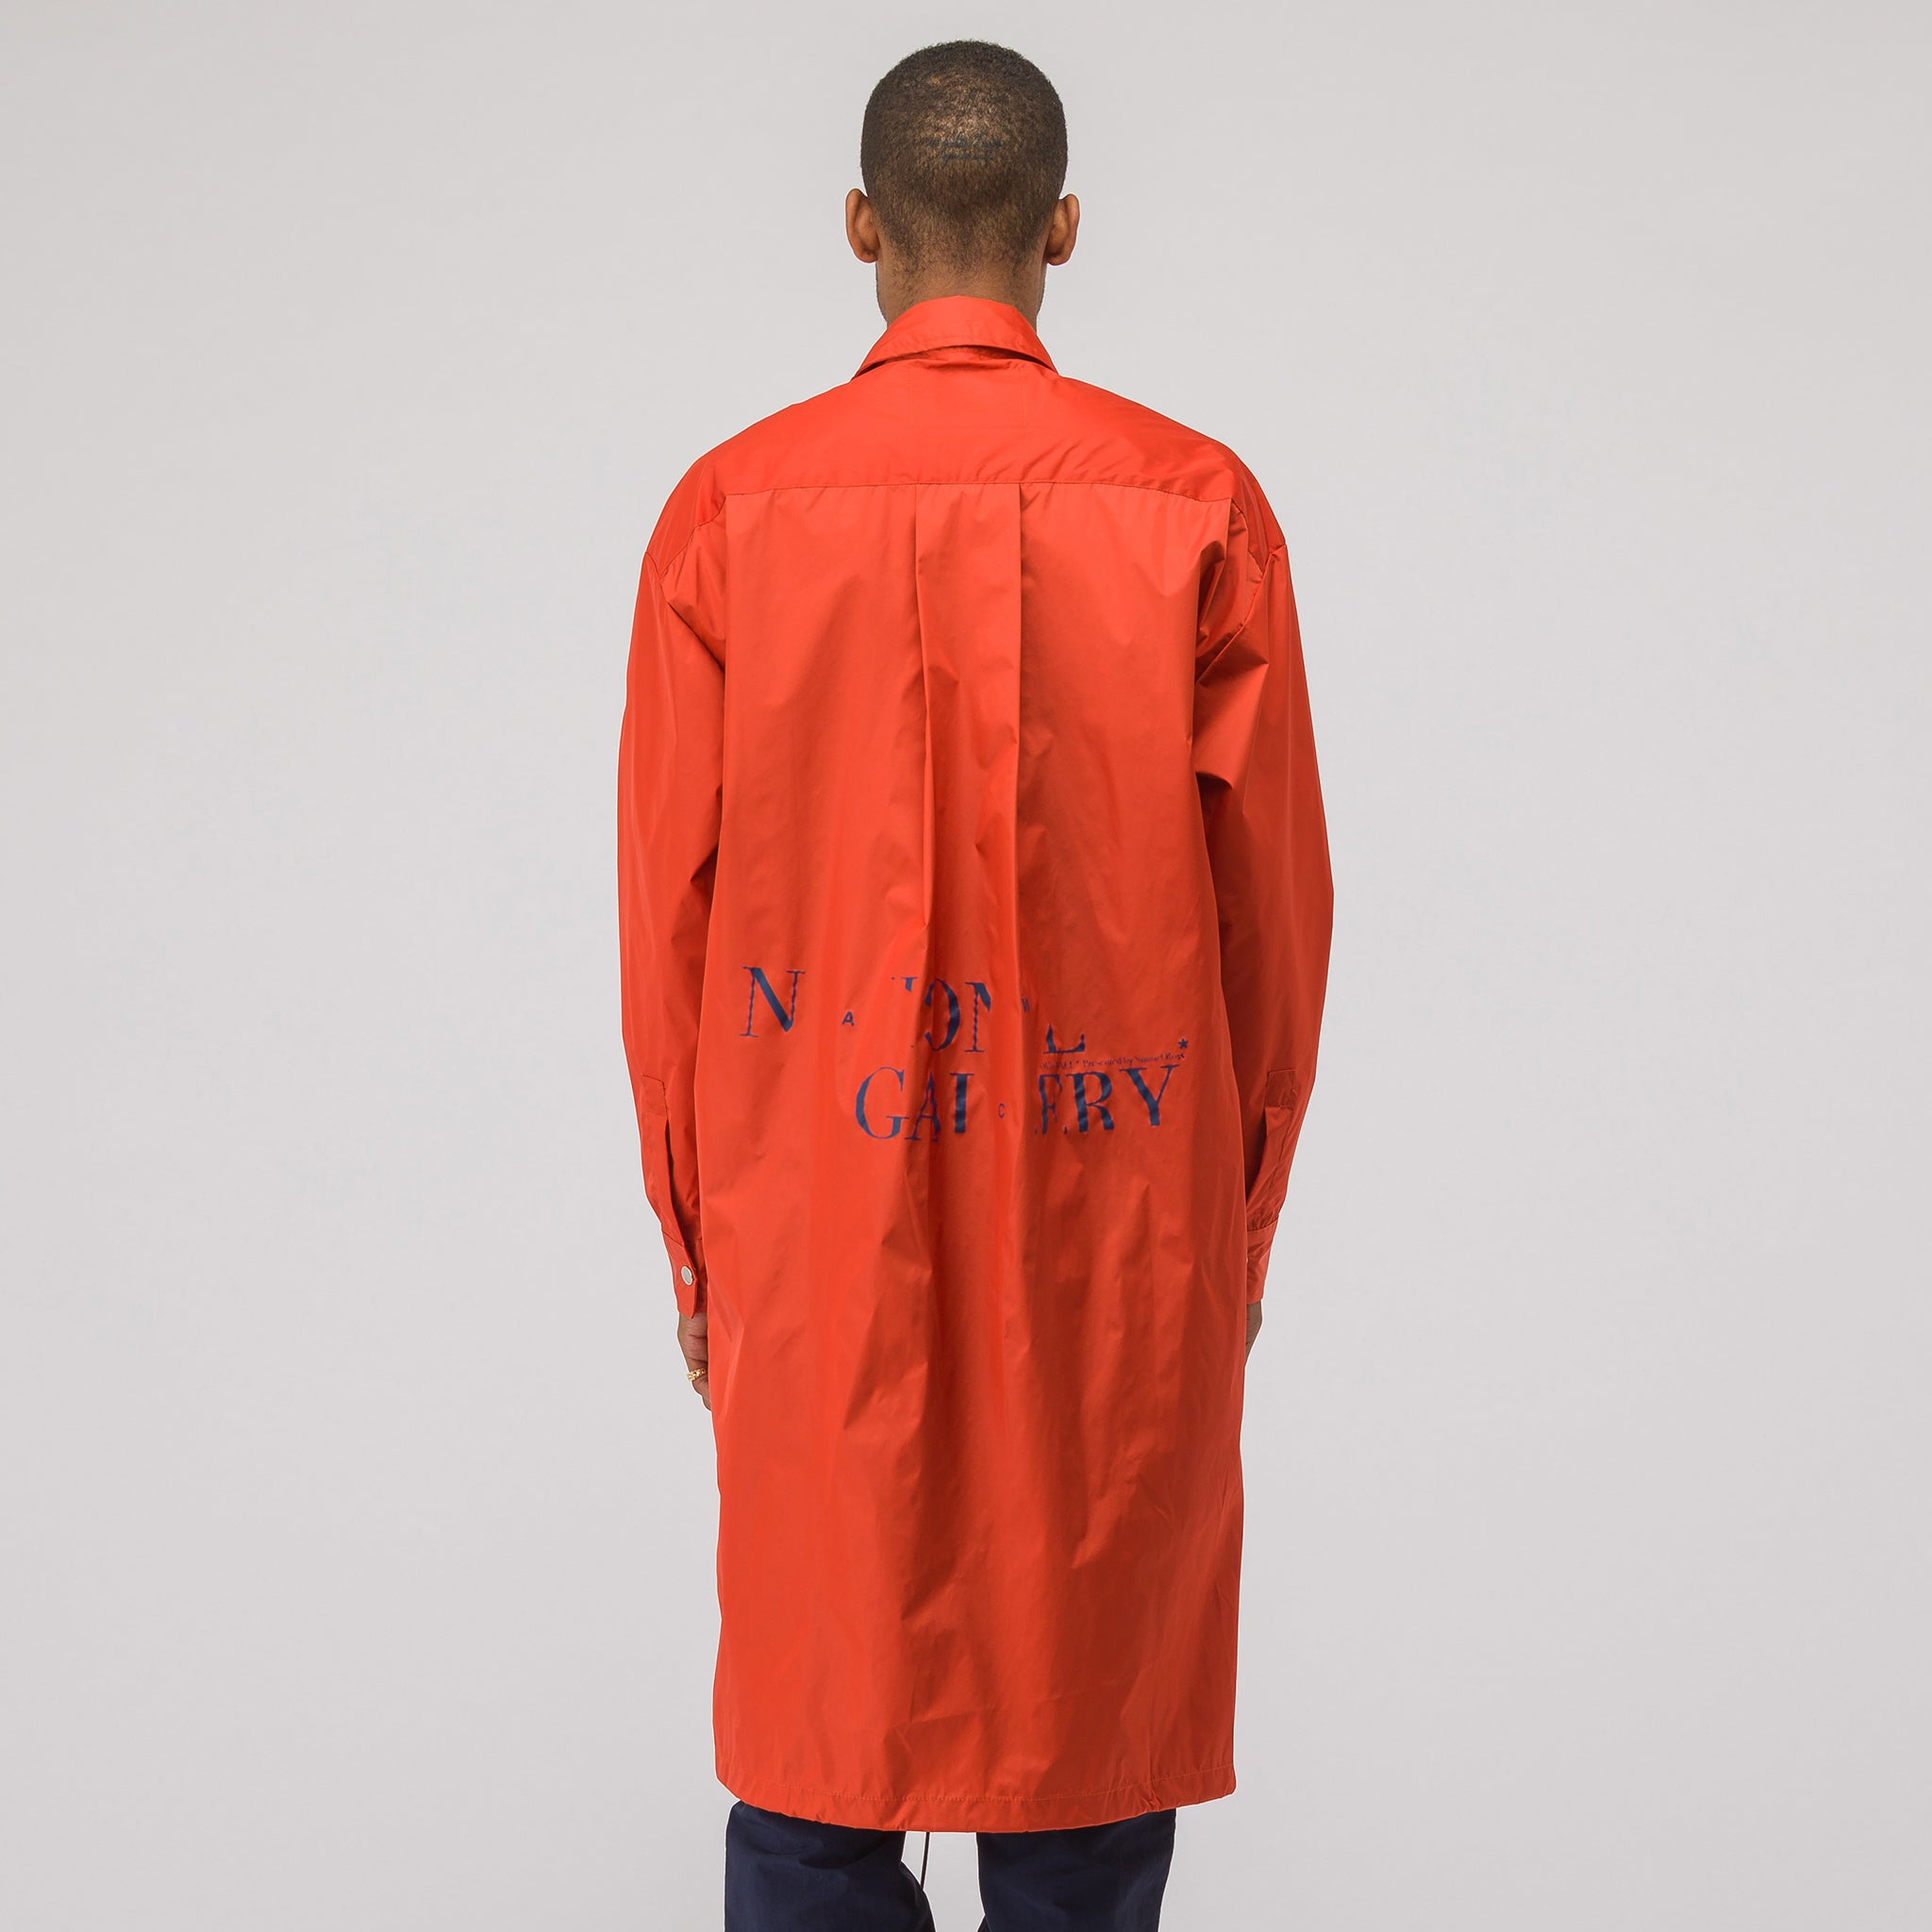 National Gallery Drawstring Coat in Orange